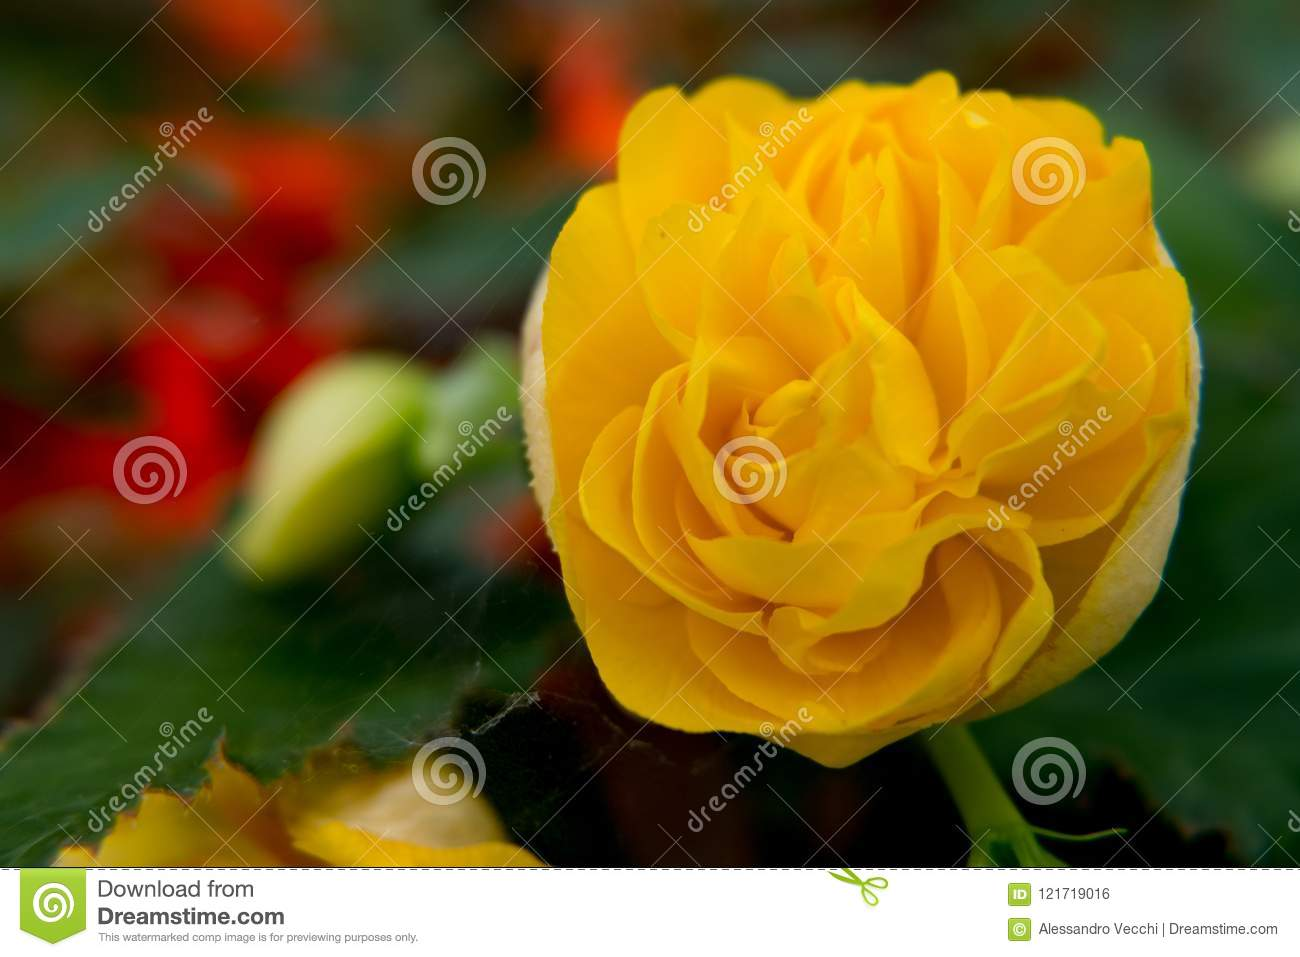 Beautiful Yellow Rose Flower Wallpaper Stock Photo Image Of Leaf